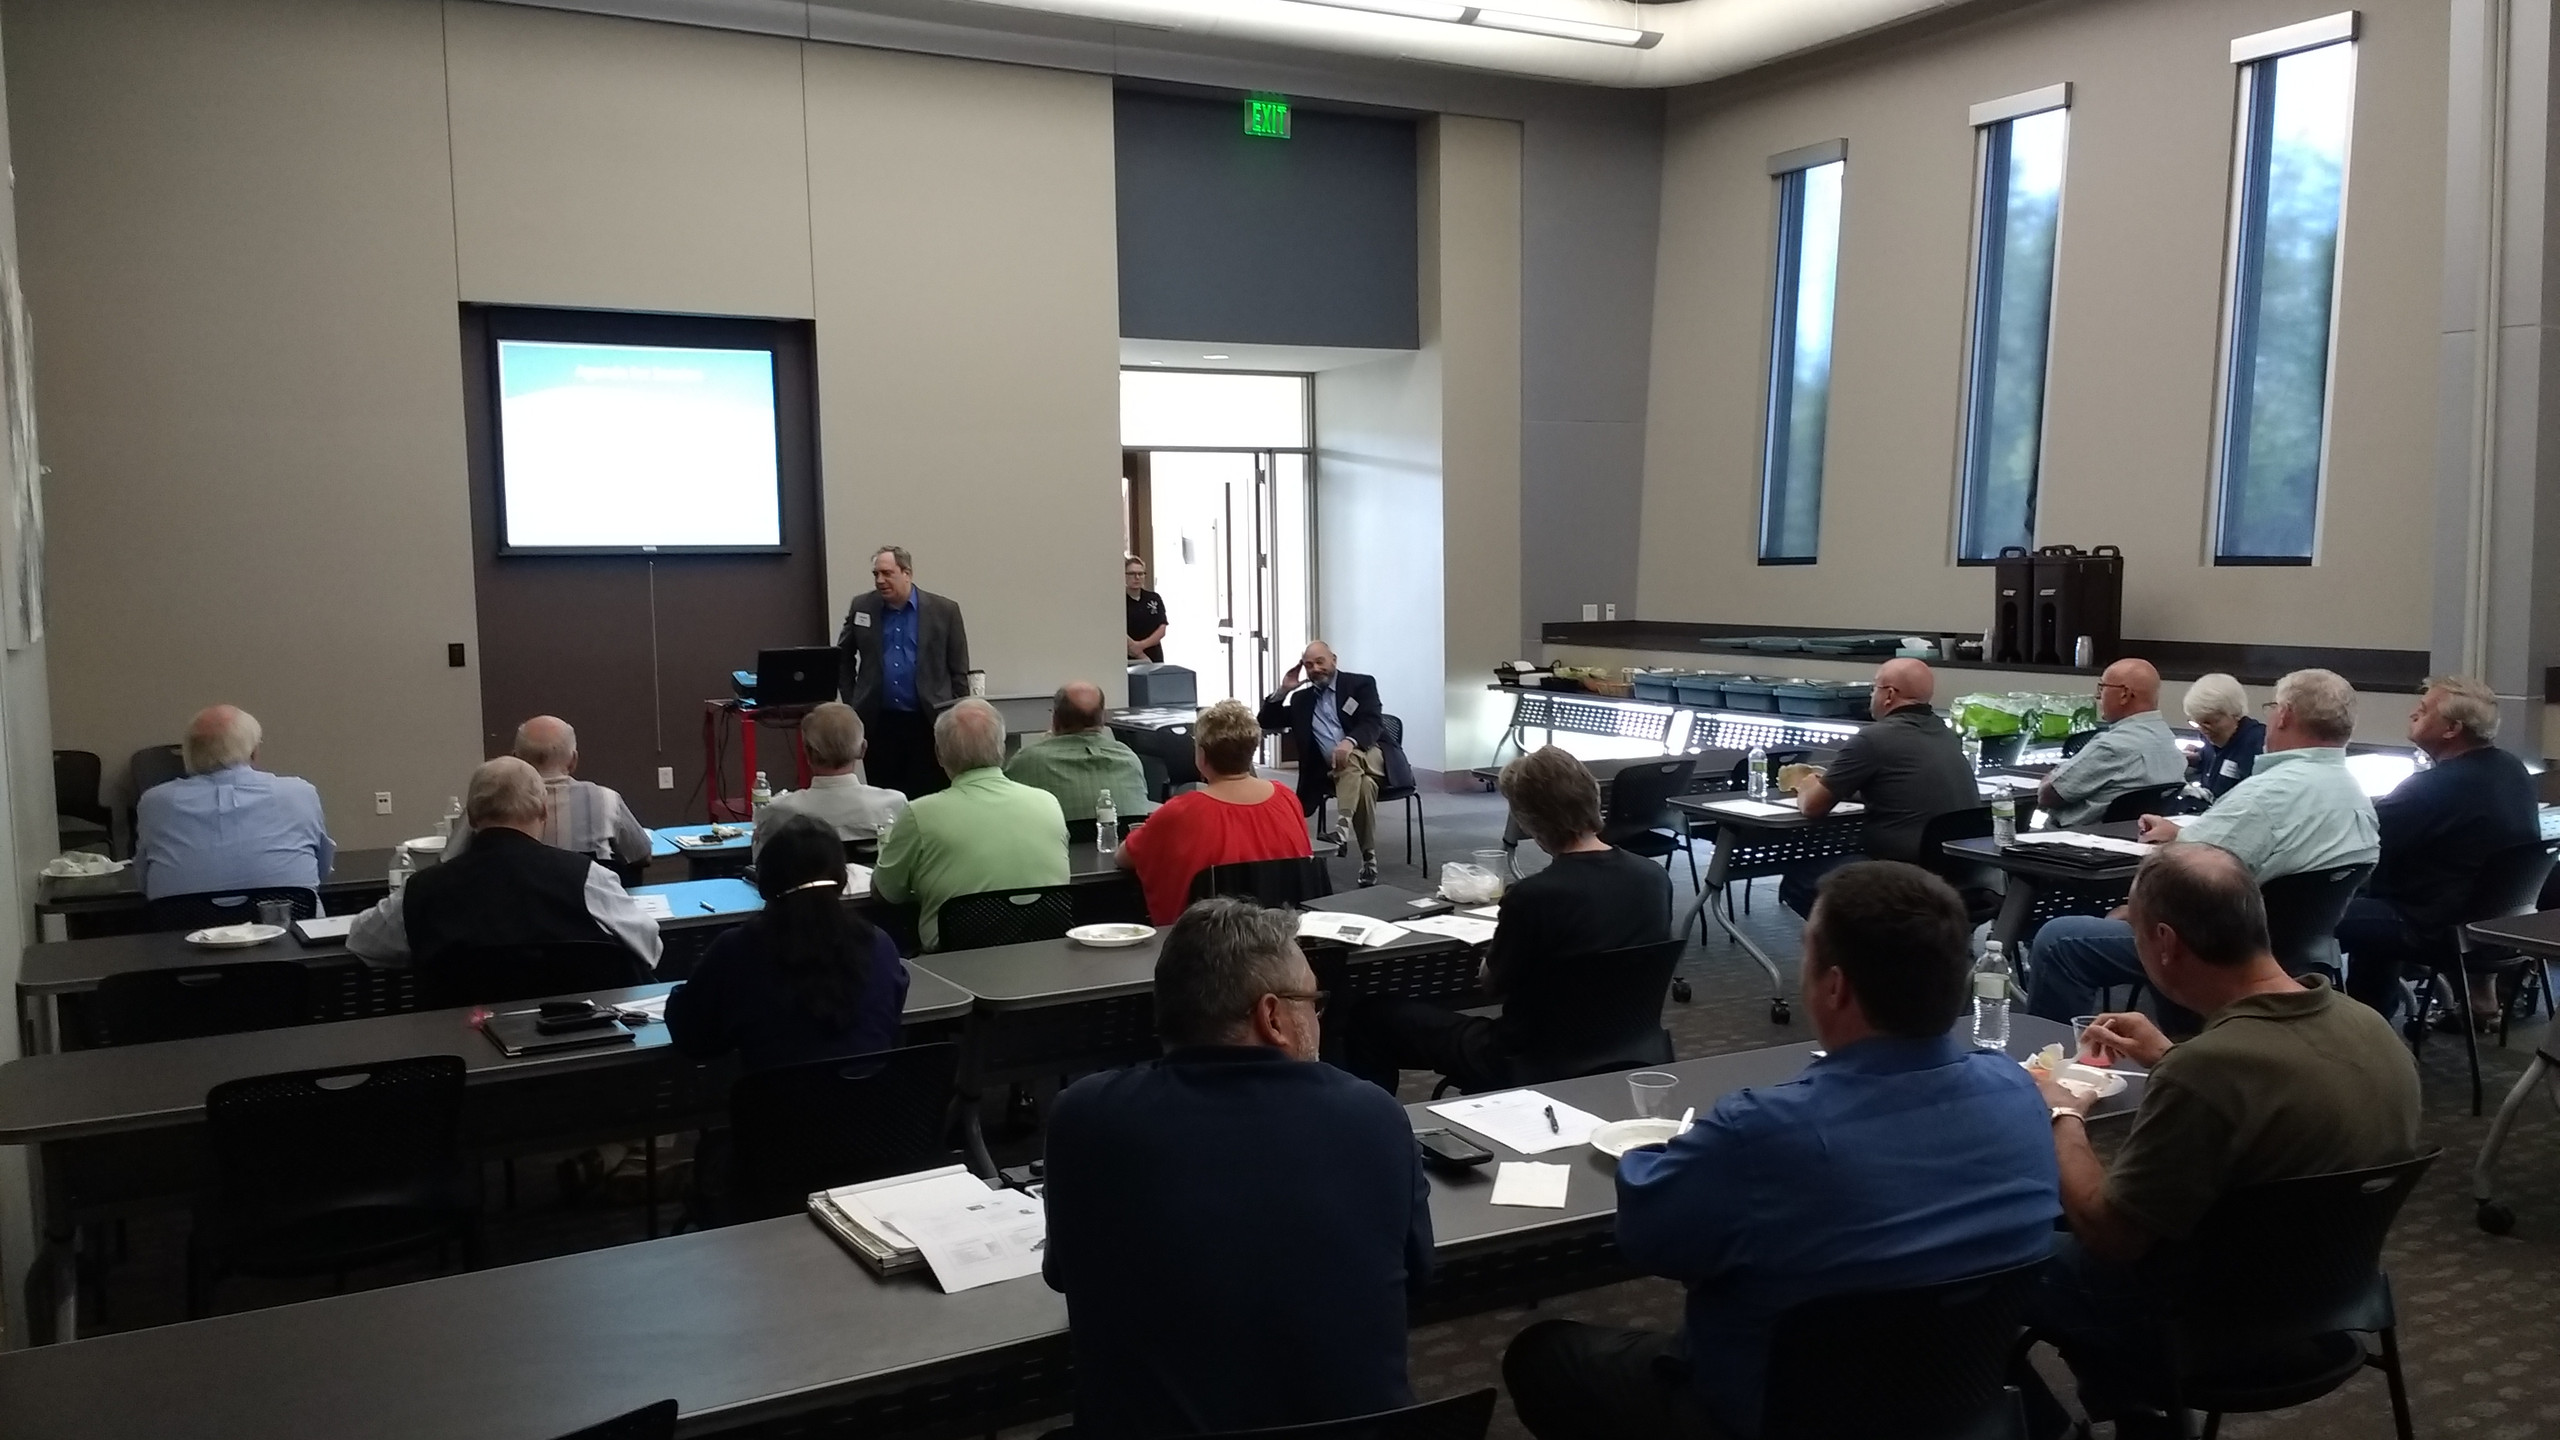 Les Pollock, FAICP and Michael Blue, FAICP present at the Plan Commissioner Training in Moline, IL 05-10-18 (photo by Shawn Christ, AICP, City of Moline)